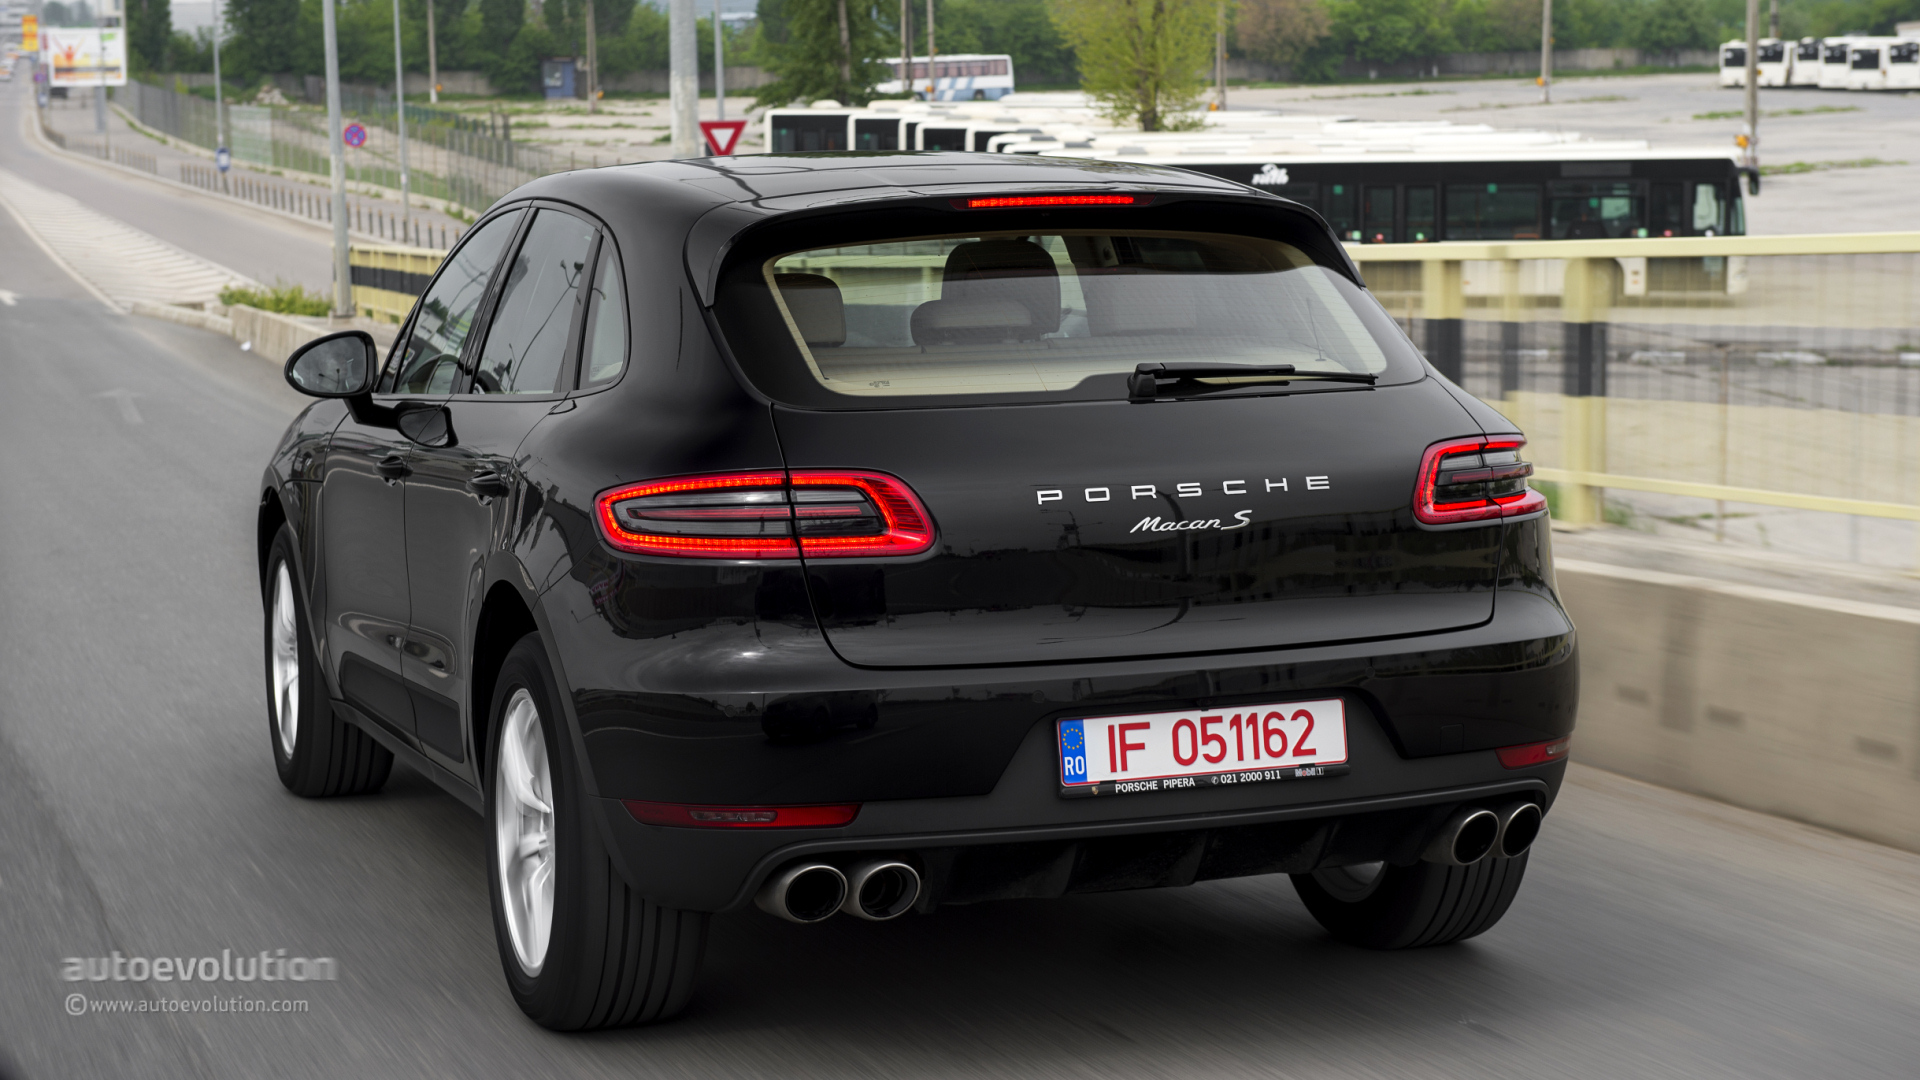 porsche macan s review autoevolution. Black Bedroom Furniture Sets. Home Design Ideas